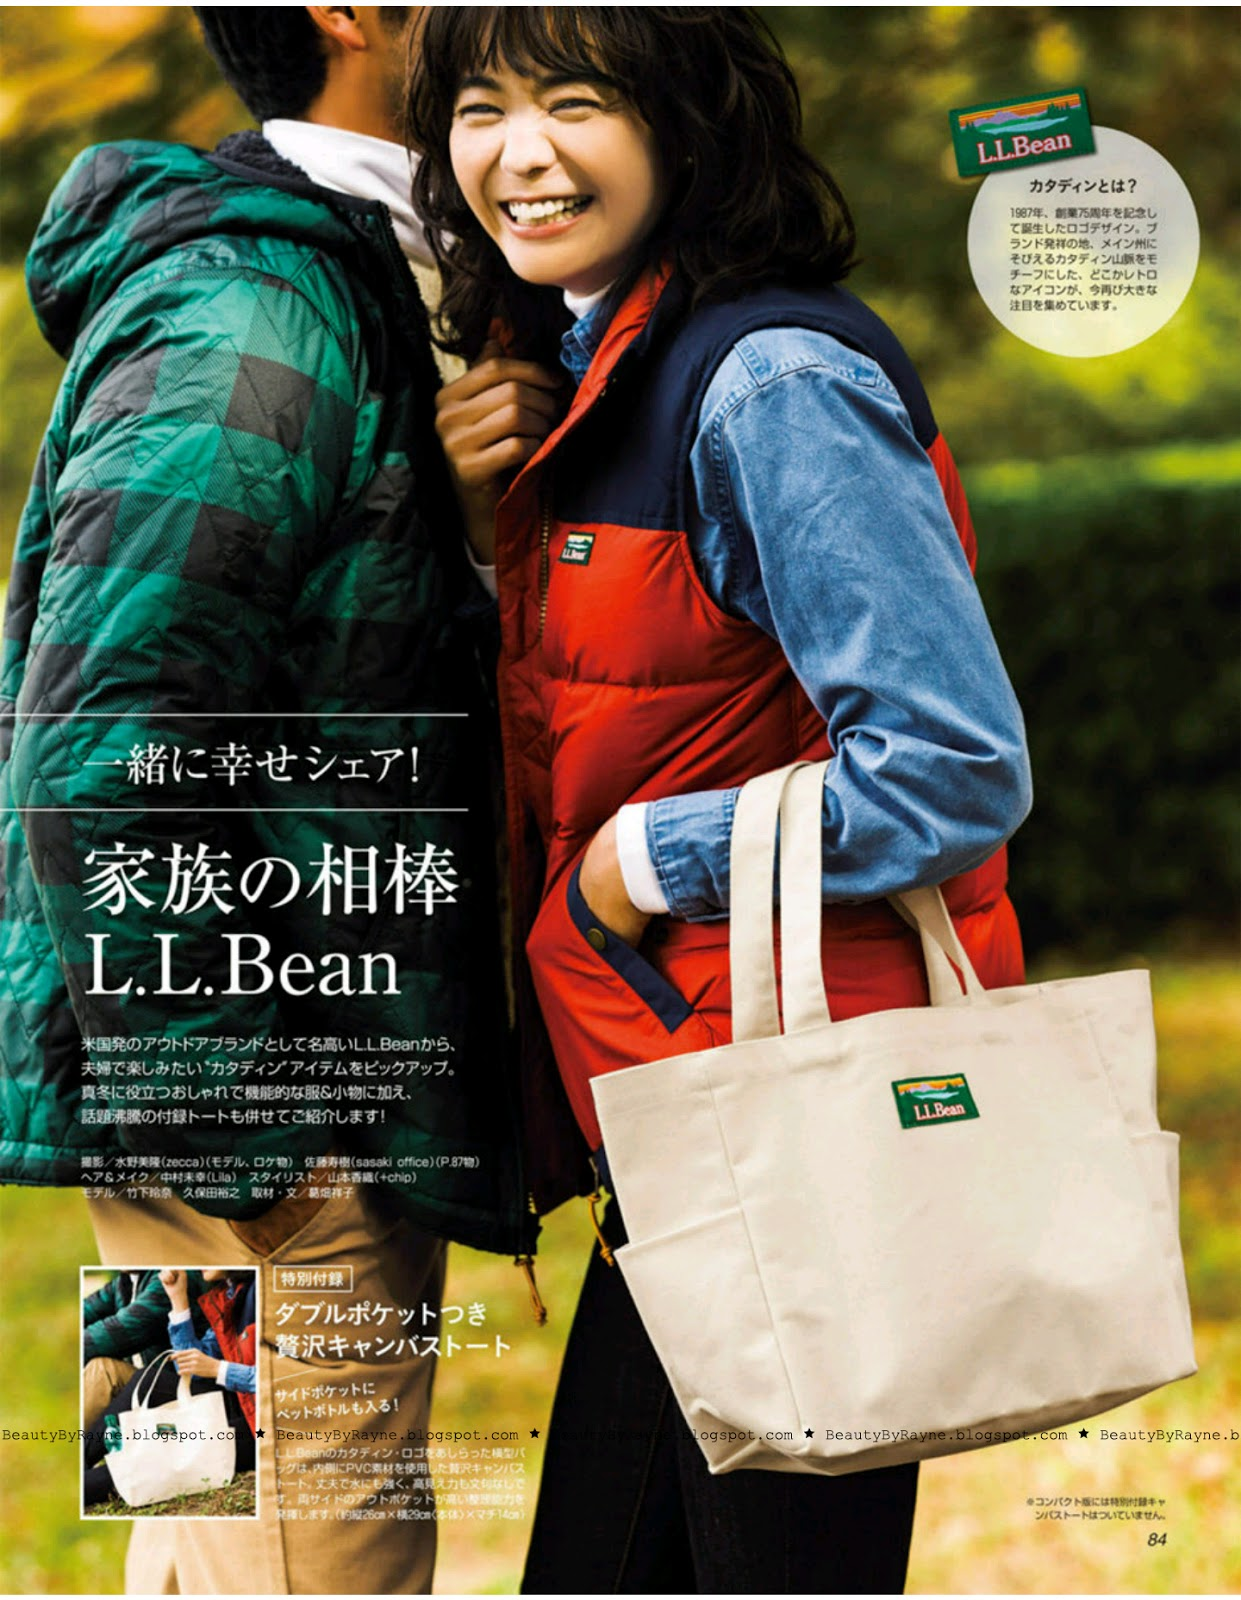 Lee January 2019 Issue, Free Japanese Fashion Magazine Scans